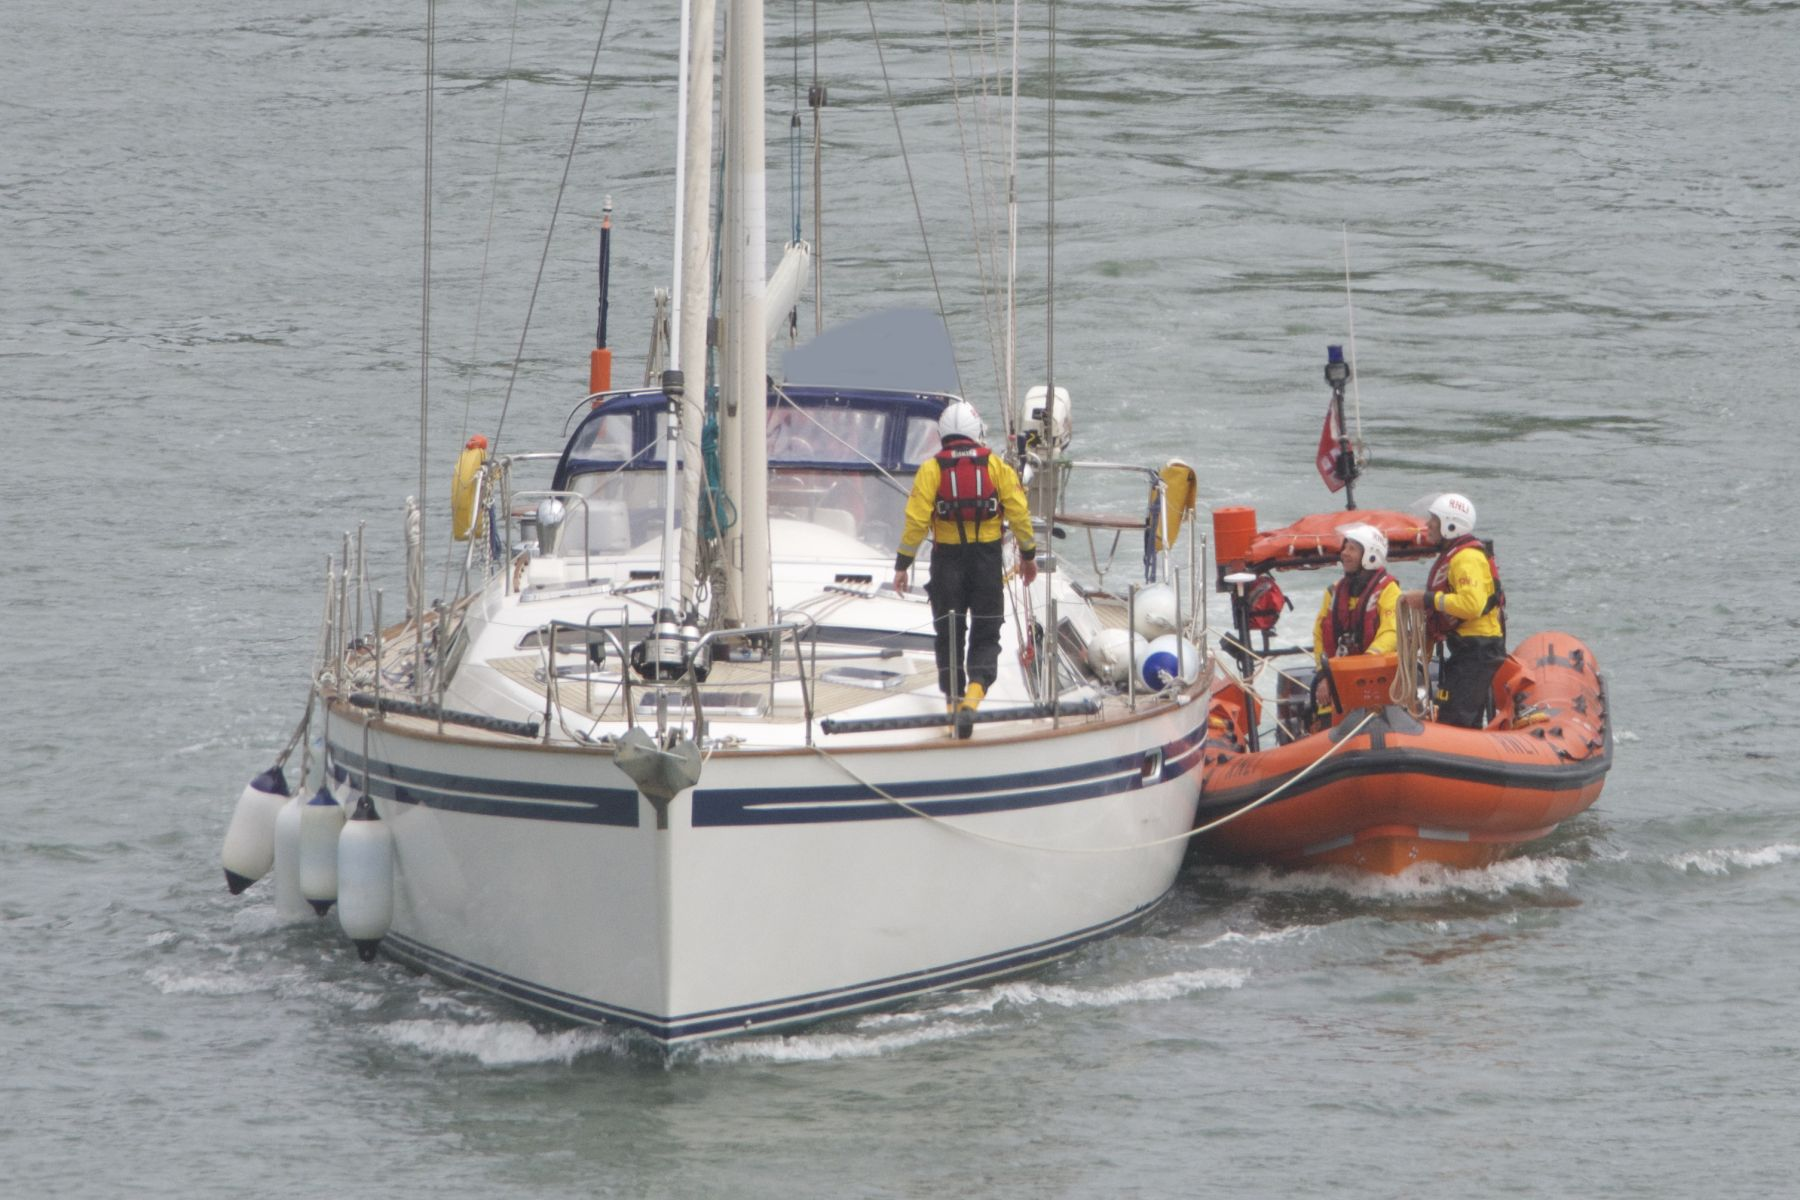 A 55ft Moody yacht developed engine failure and requested help.